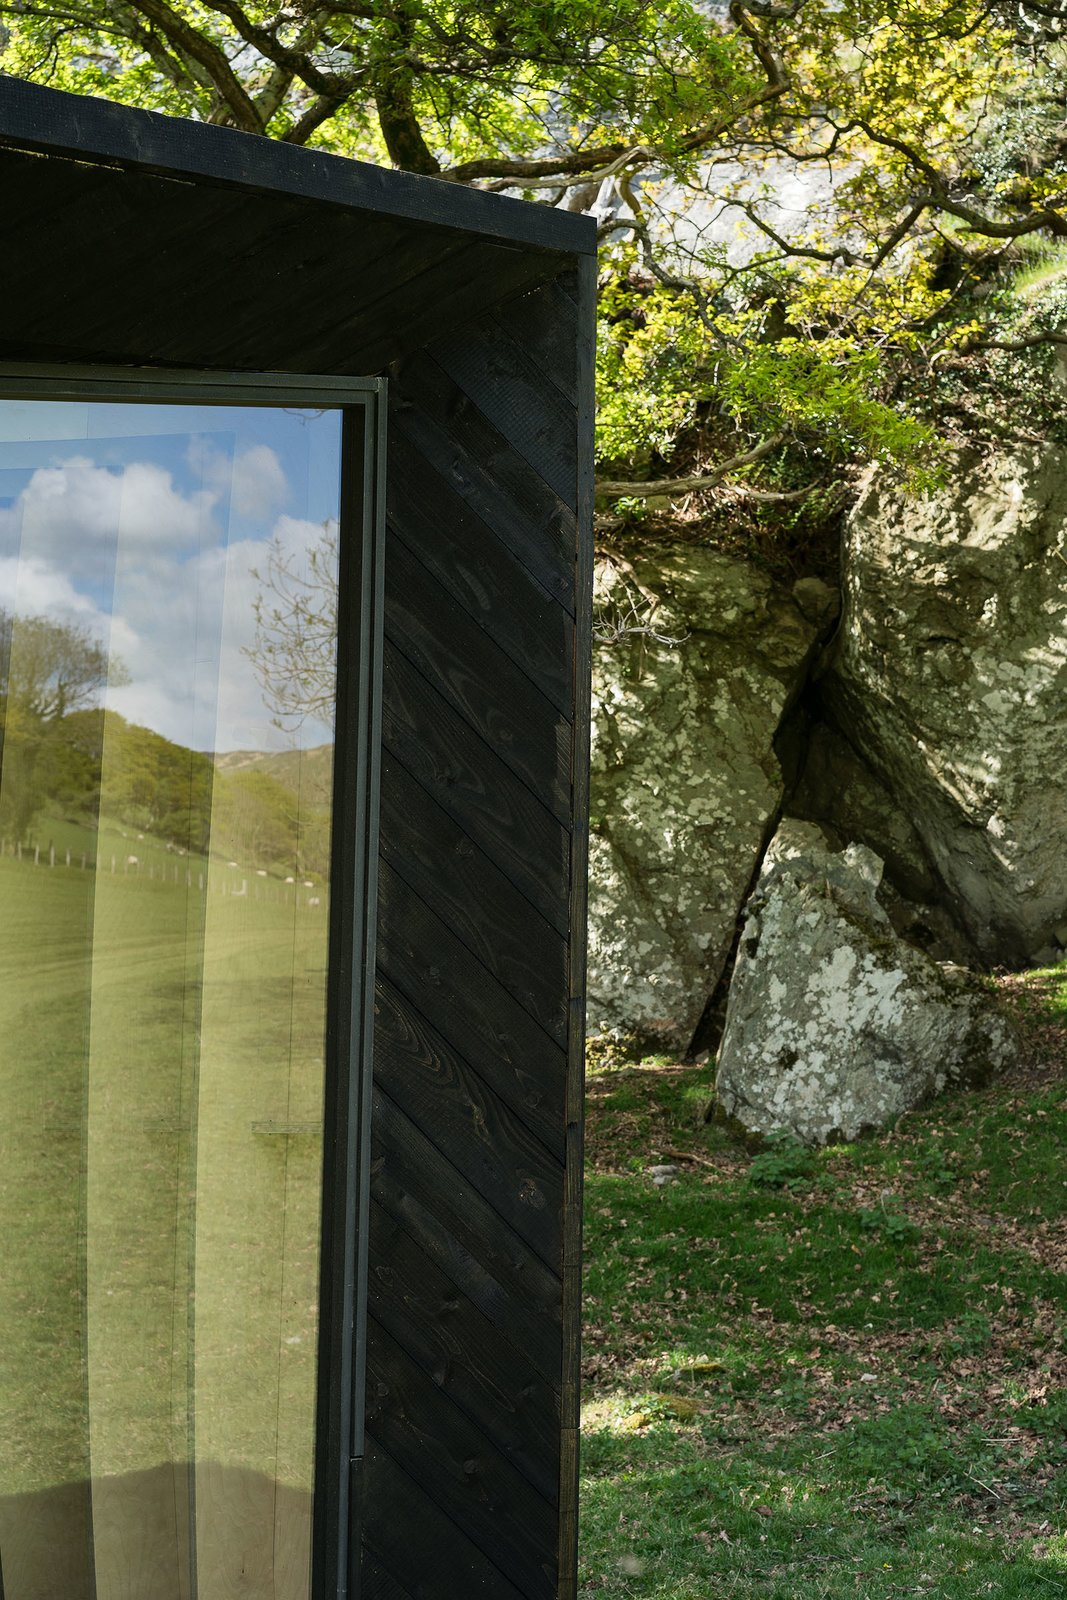 Photo 9 of 11 in Tour One of Epic Retreat's Tiny Pop-Up Hotel Cabins in the Welsh Countryside